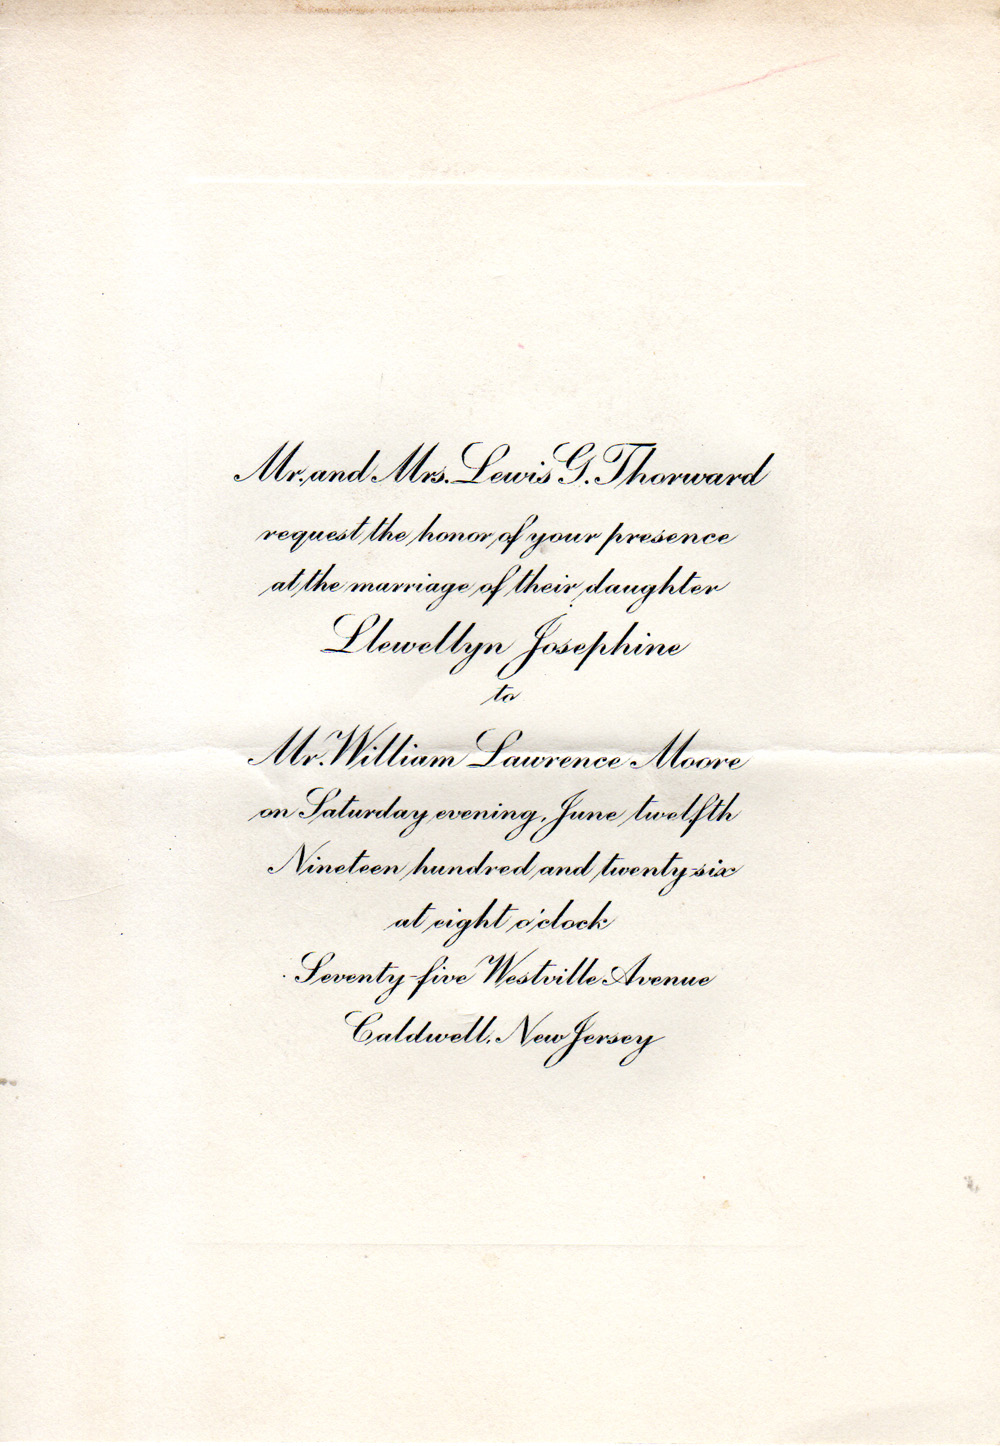 wedding invitation from 1926